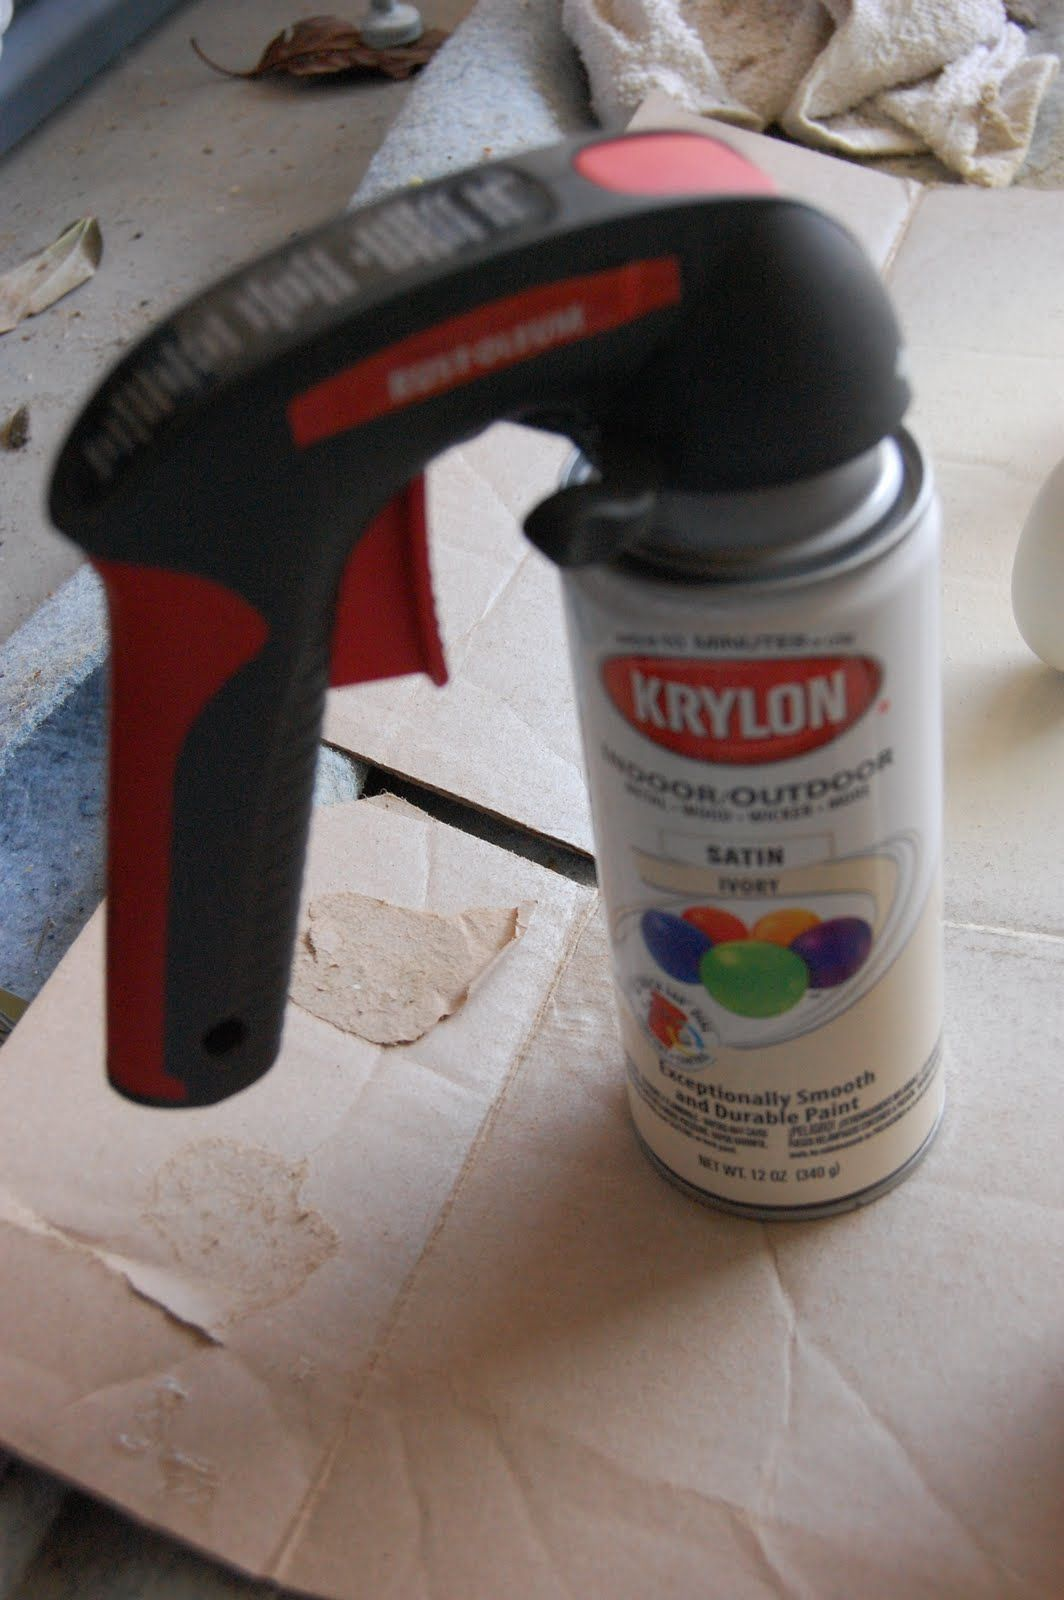 Best spray paint  investment  ever  Spray paint hand gun   6 dollars at Home  Depot  Saves your finger and helps spray a nice even coat  I need to get  this. Spray paint hand gun   I spray paint   a lot  I can t believe that